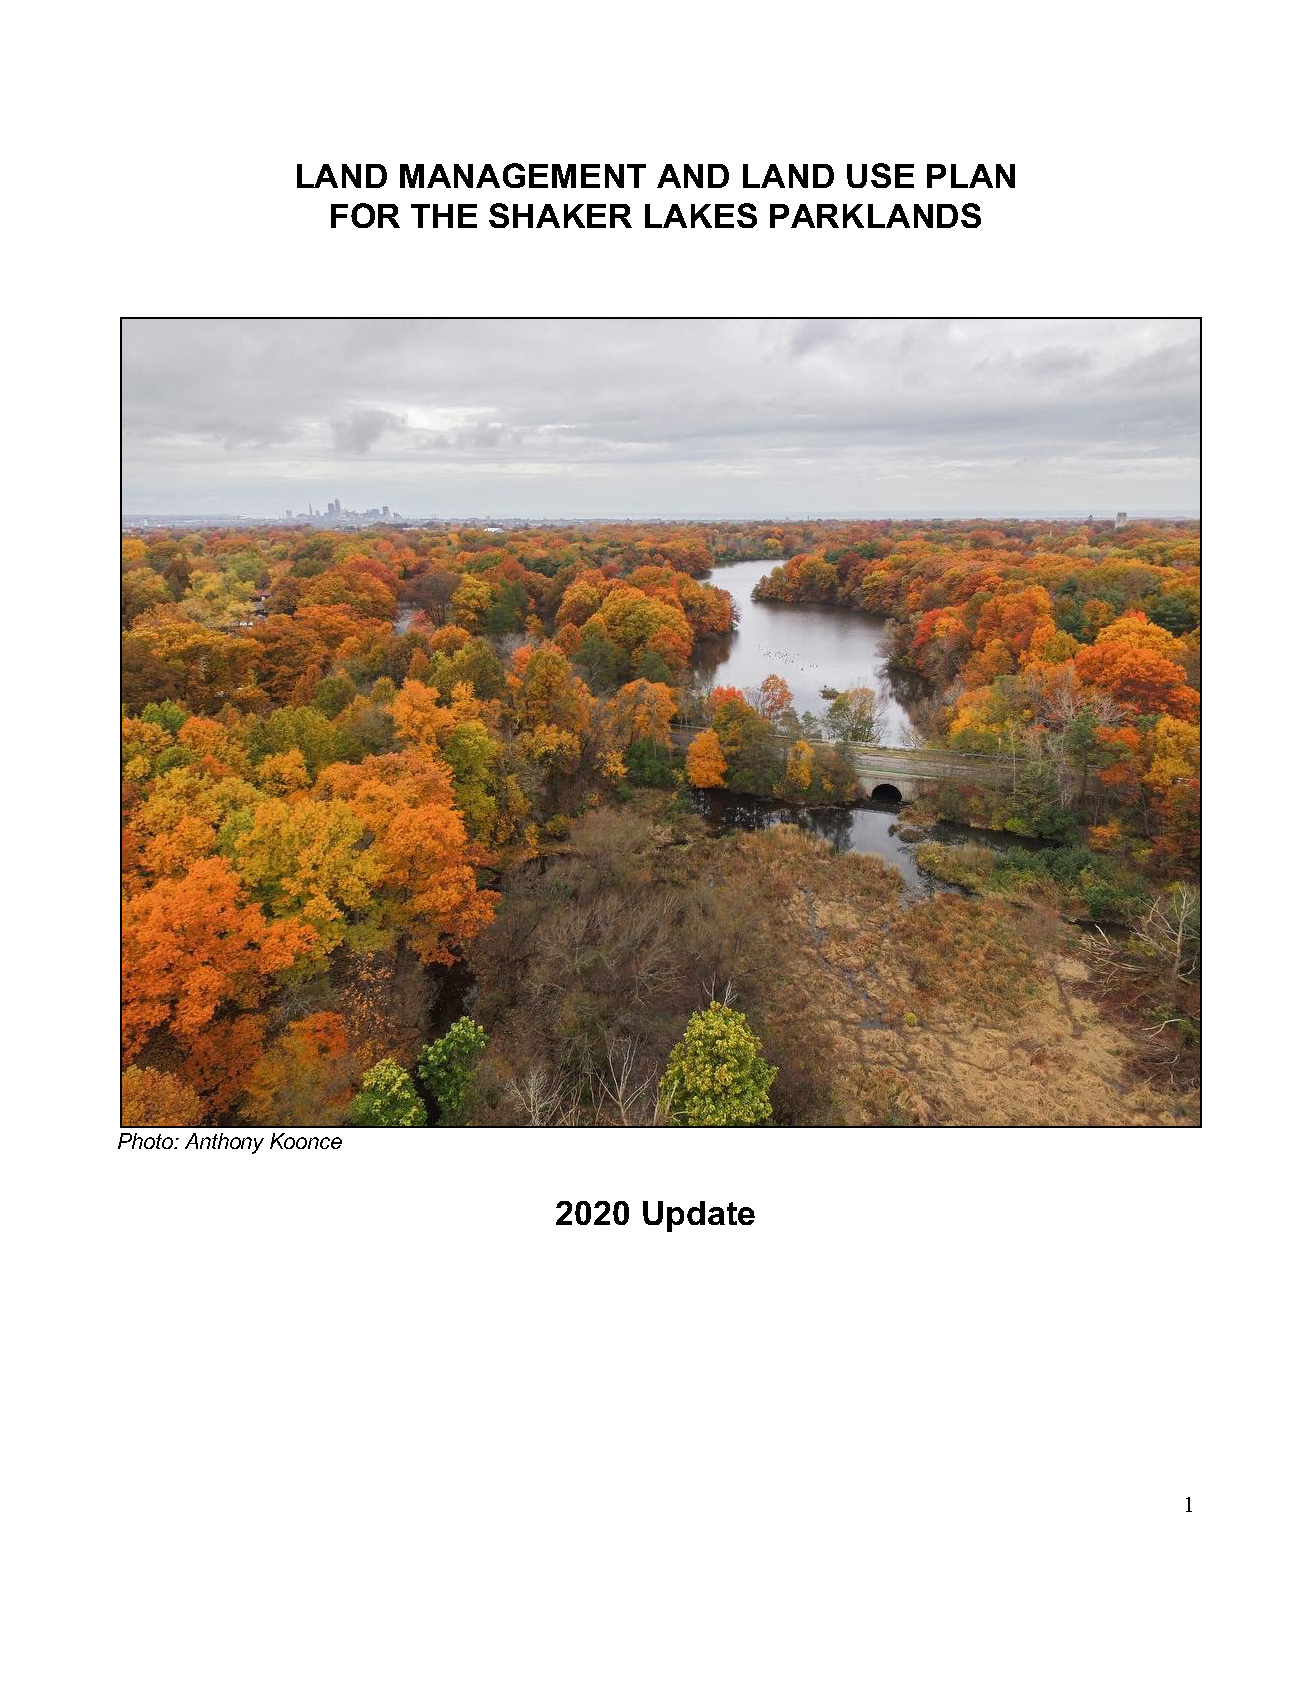 Cover page of the Parklands Management Plan